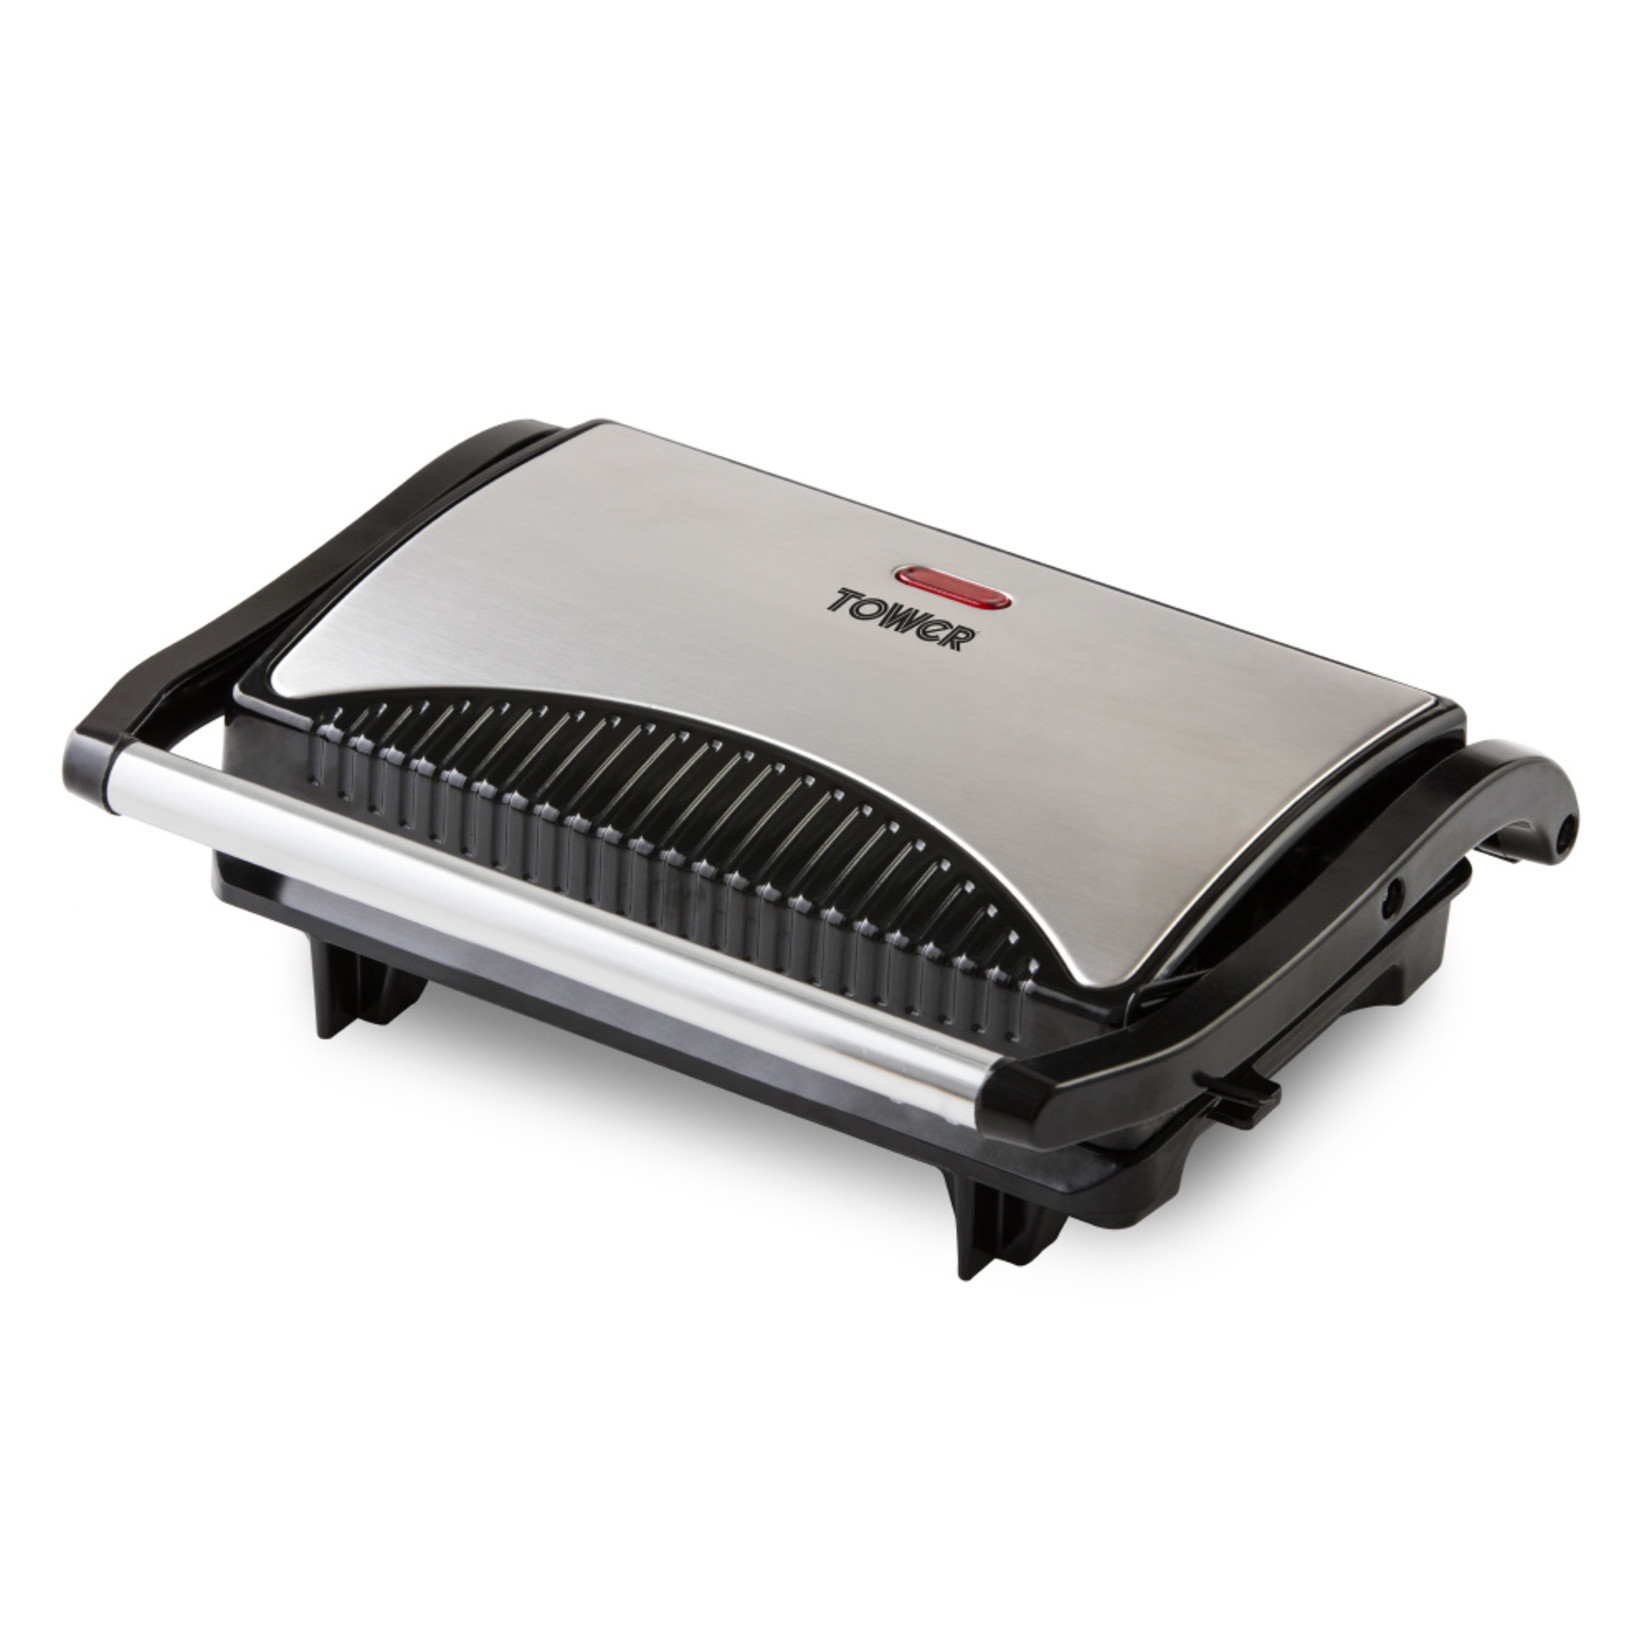 Tower Tower panini grill T27019